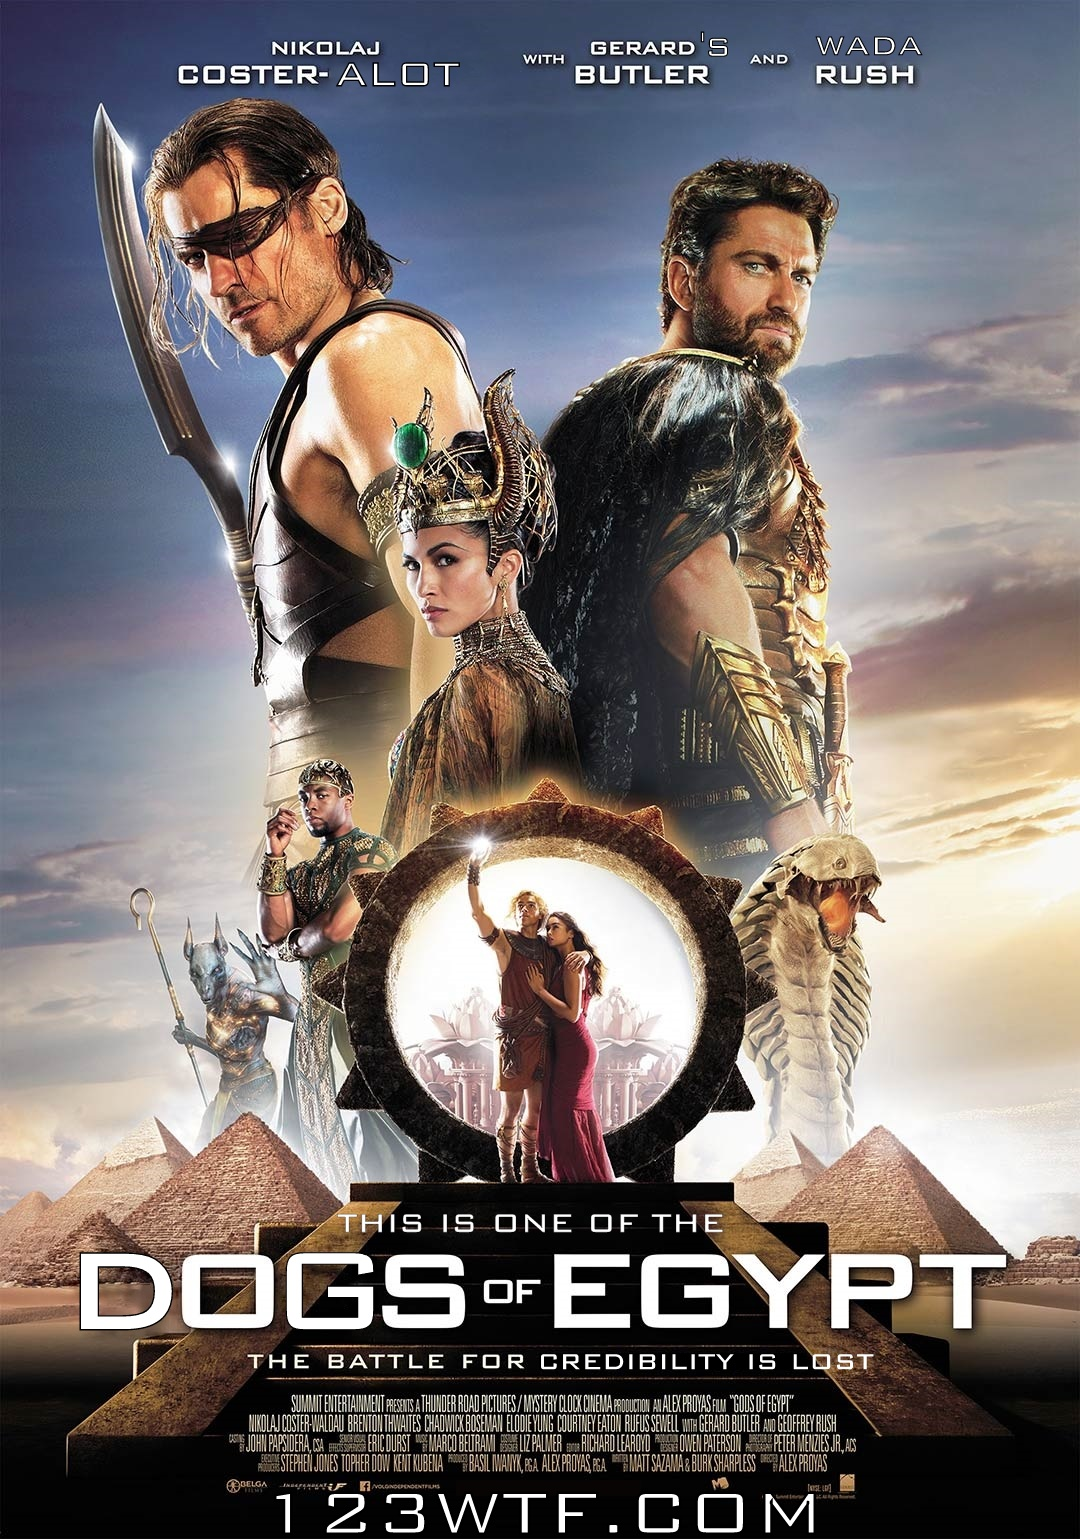 The film Gods of Egypt: actors and roles, the plot